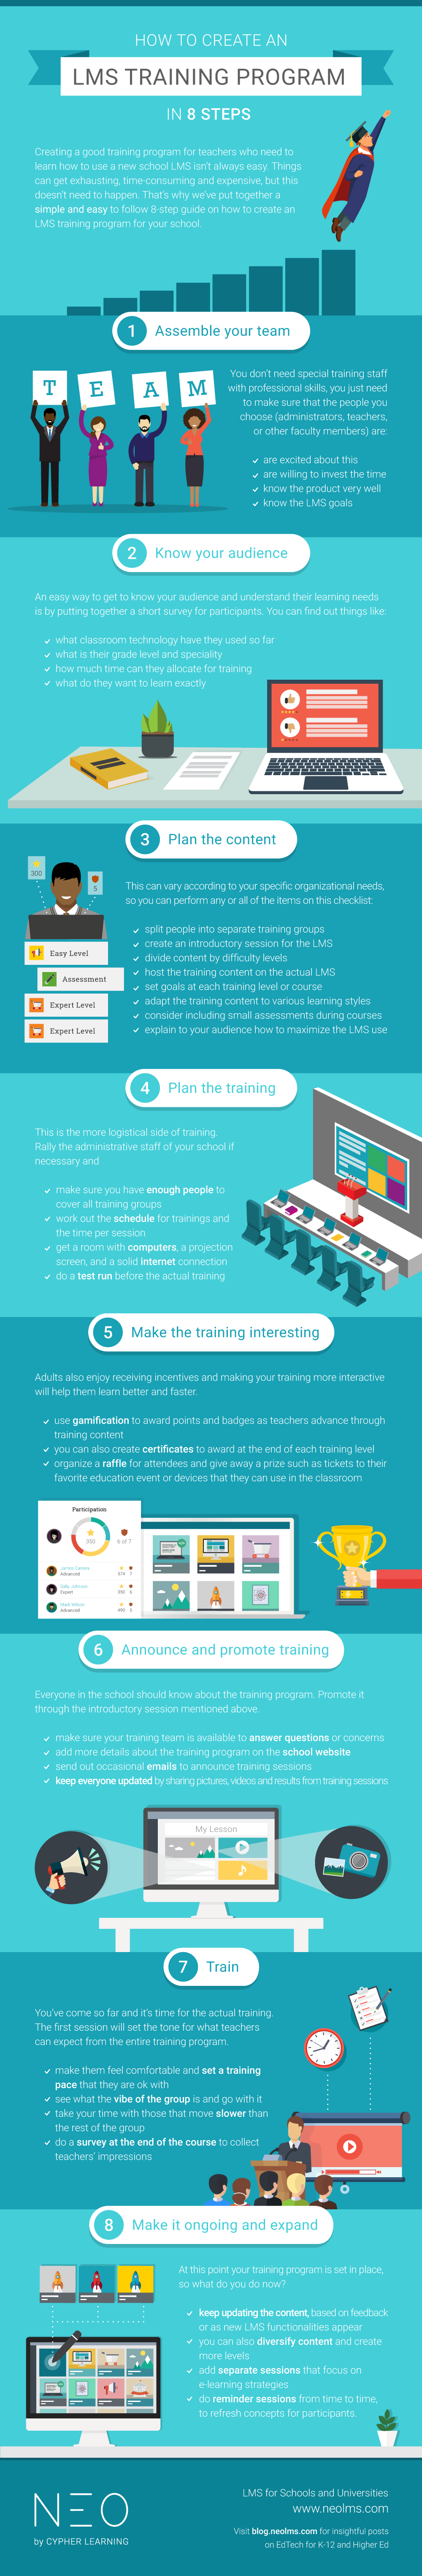 E-learning Infographic | Create an LMS Training Program